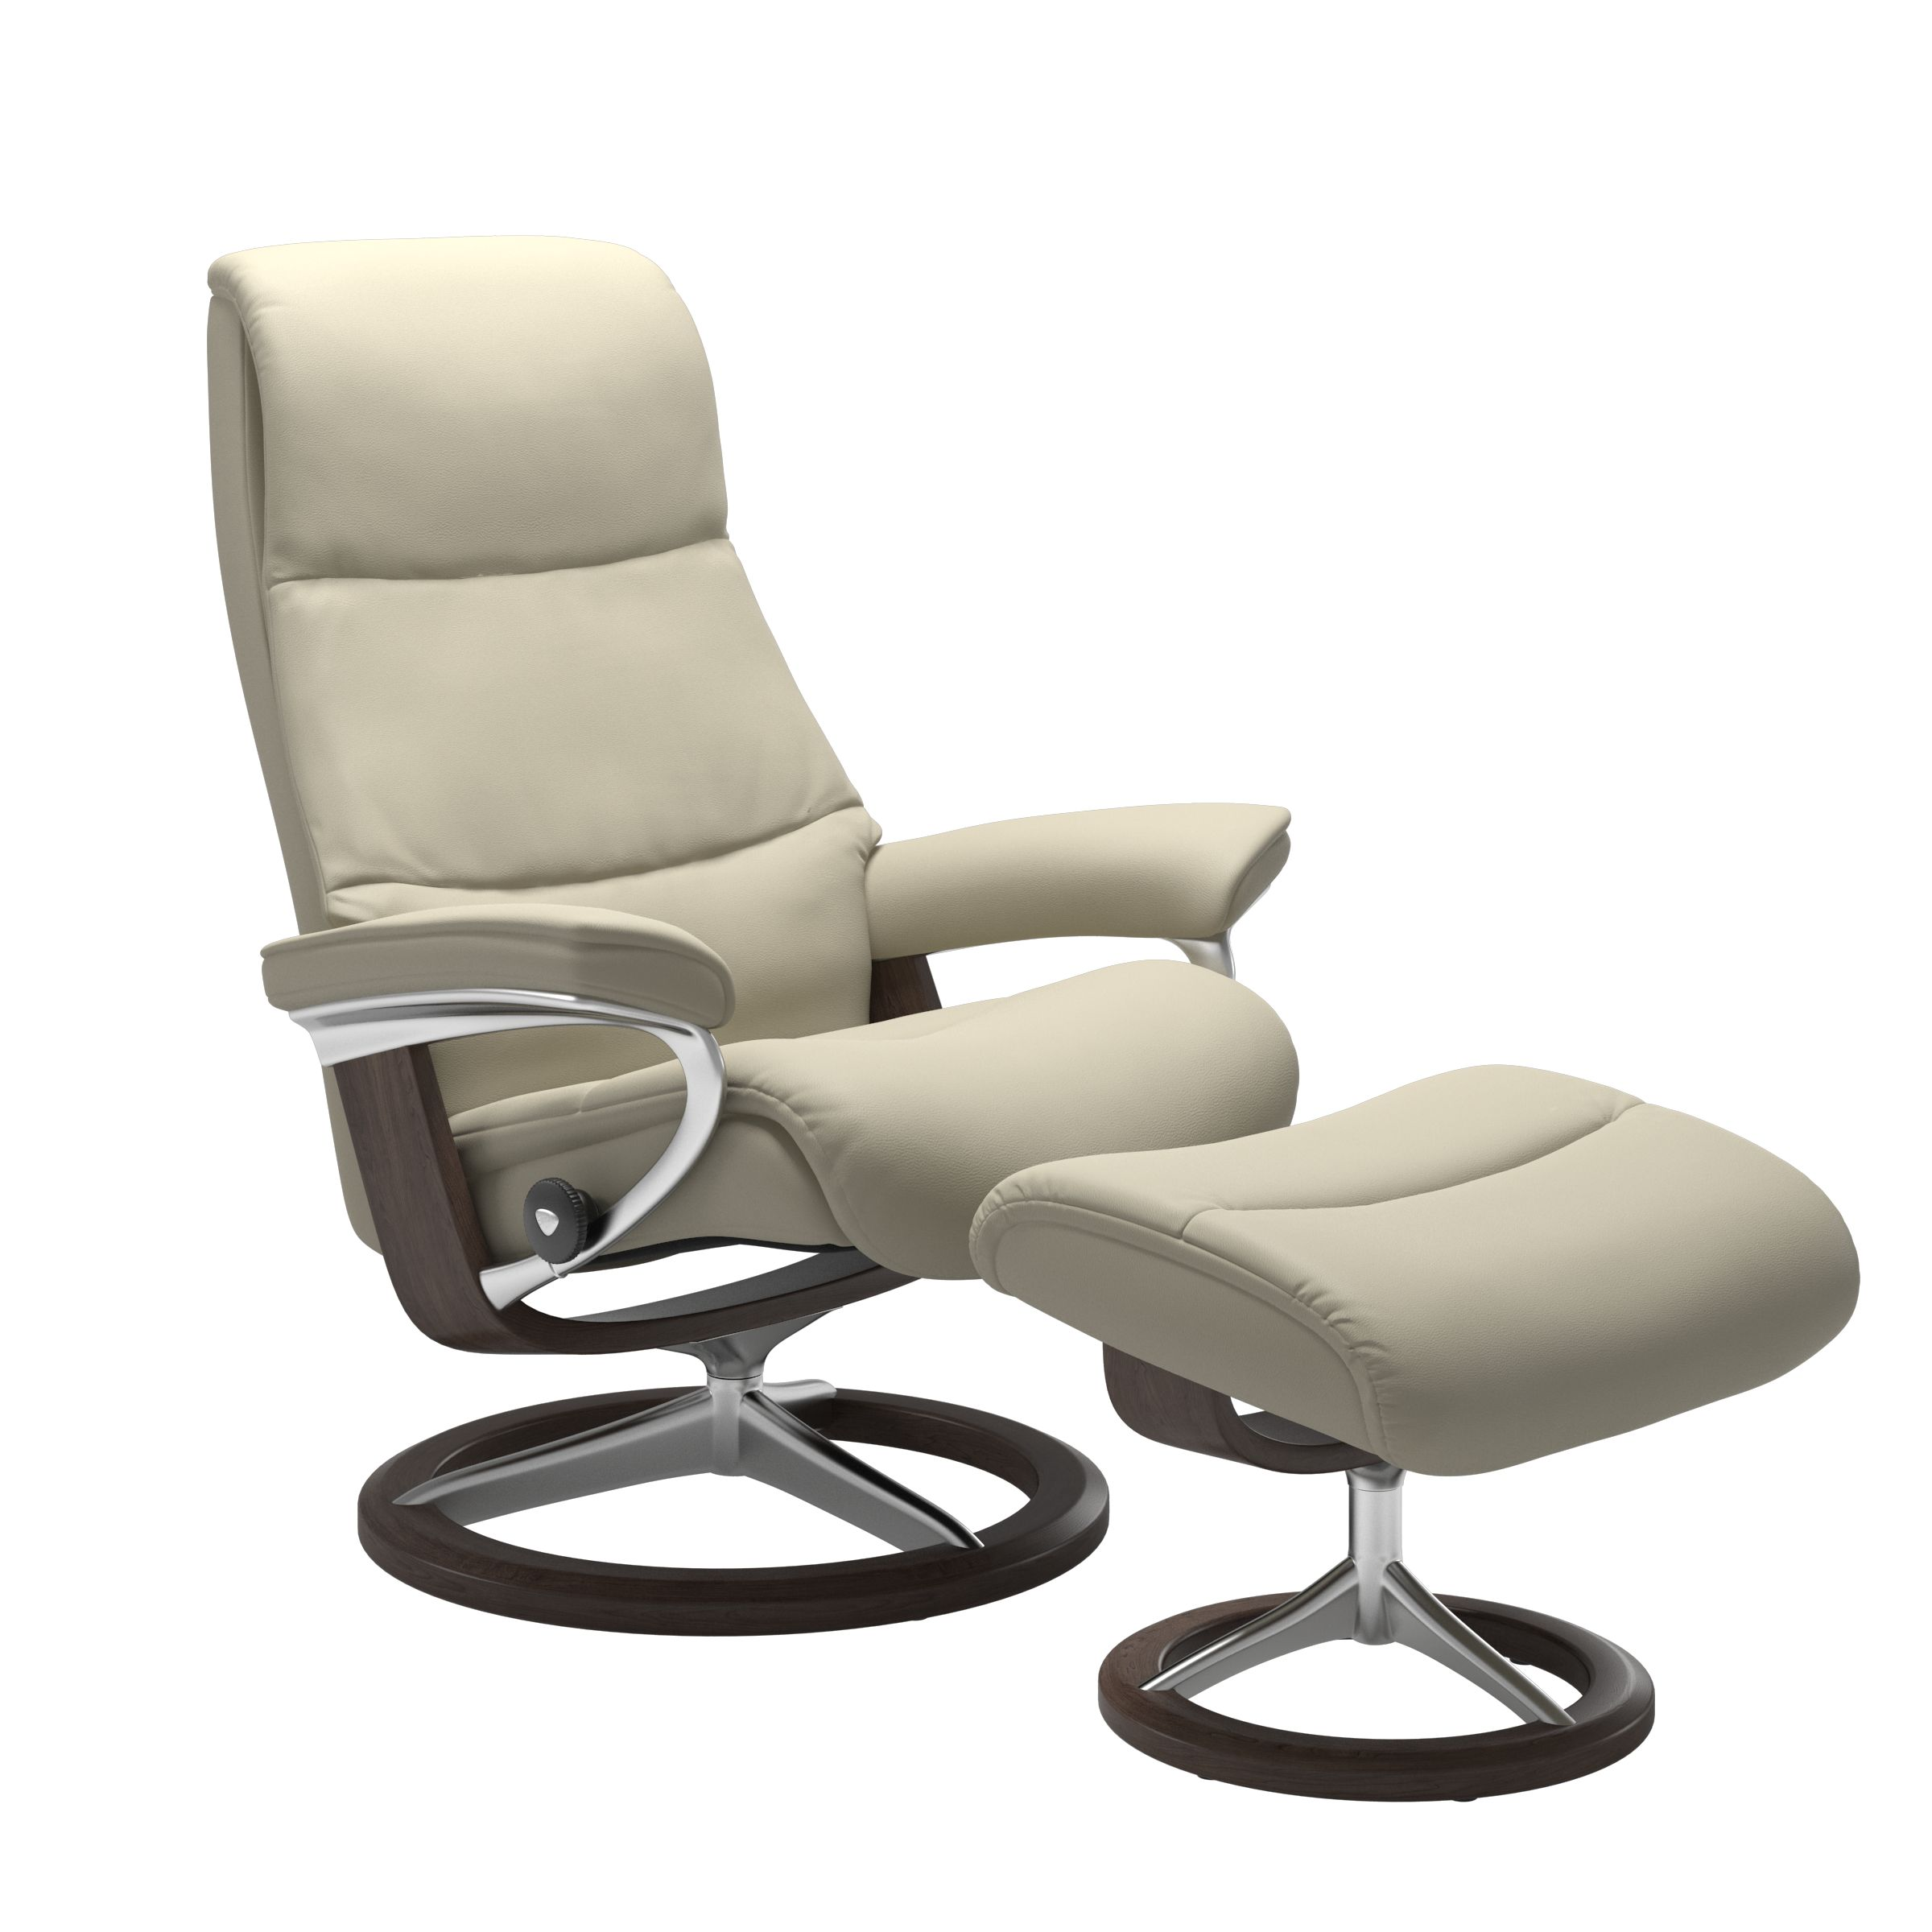 Stressless Relaxsessel Mit Hocker View Relax Oder Gamingsessel Stressless Relaxsessel